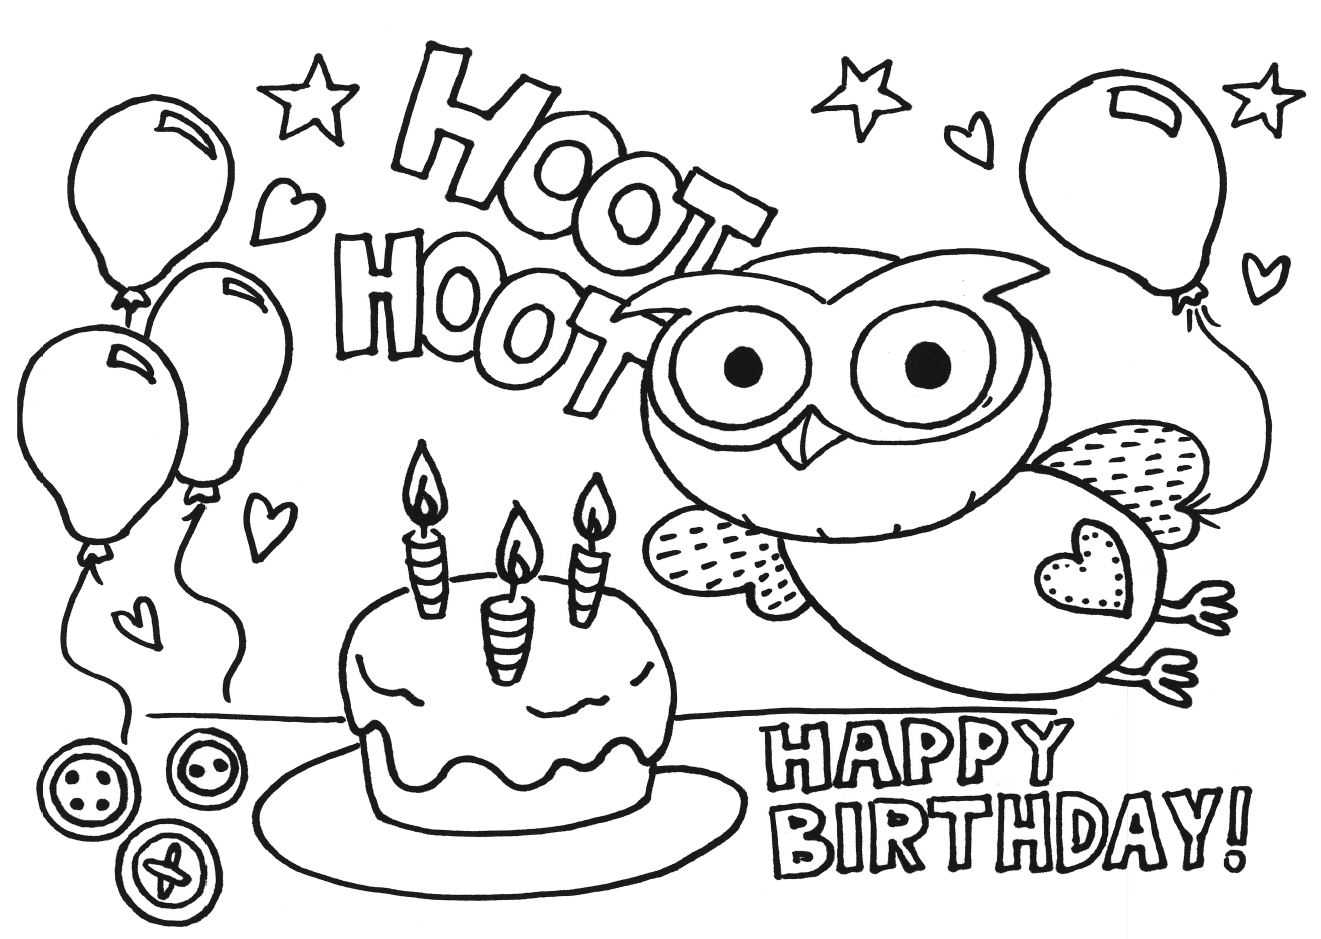 birthday colouring in ; Giggle+Hoot+Birthday+Cake+Drawing+Art+Colouring+Color+Book+Page+Sheet